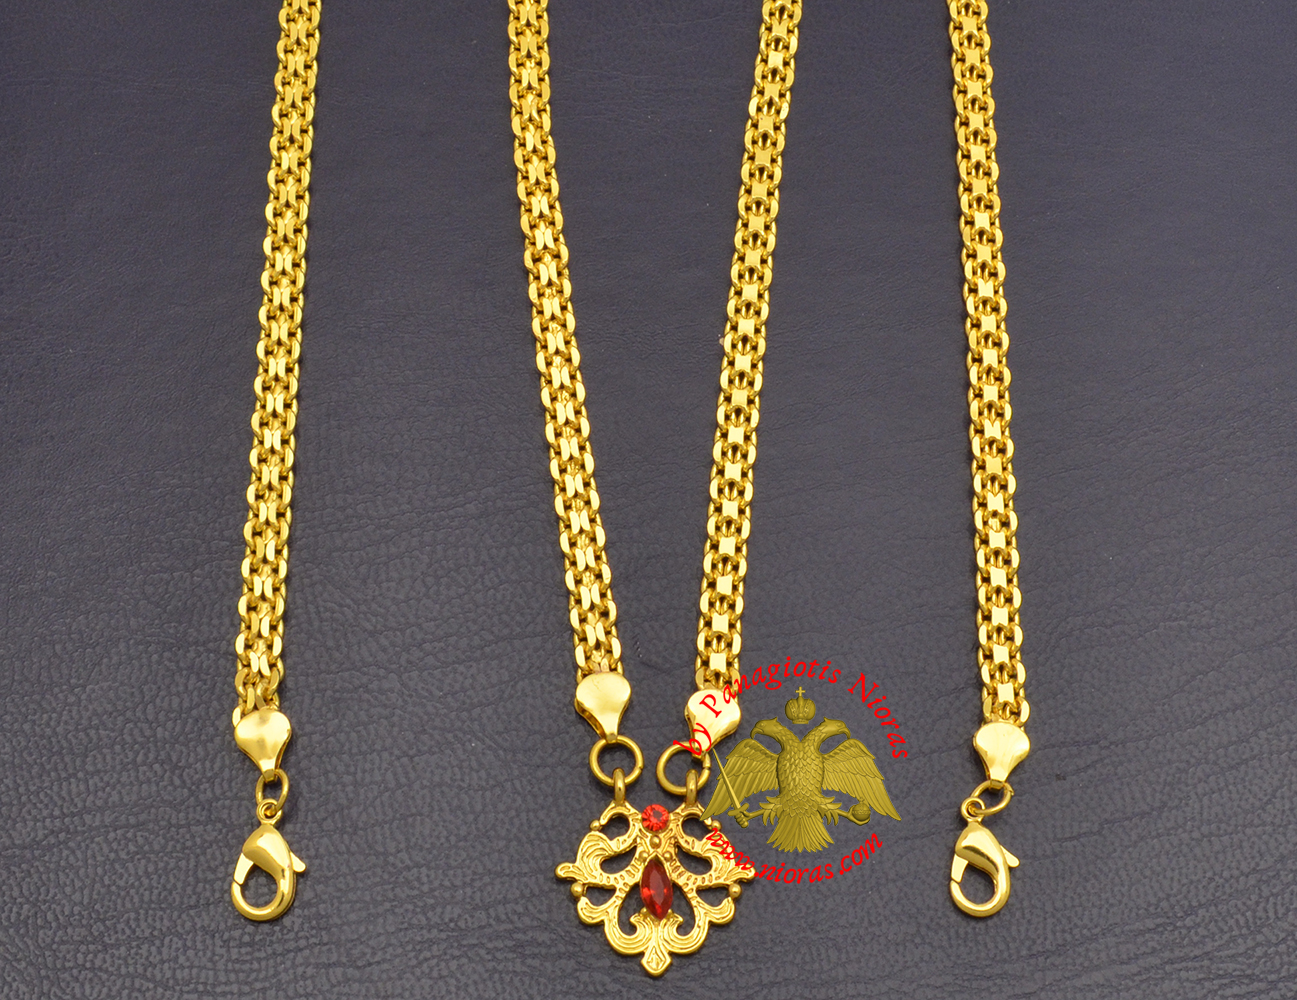 Metal Chain for Orthodox Engolpion or Pectoral Cross Gold Plated 120 cm D'